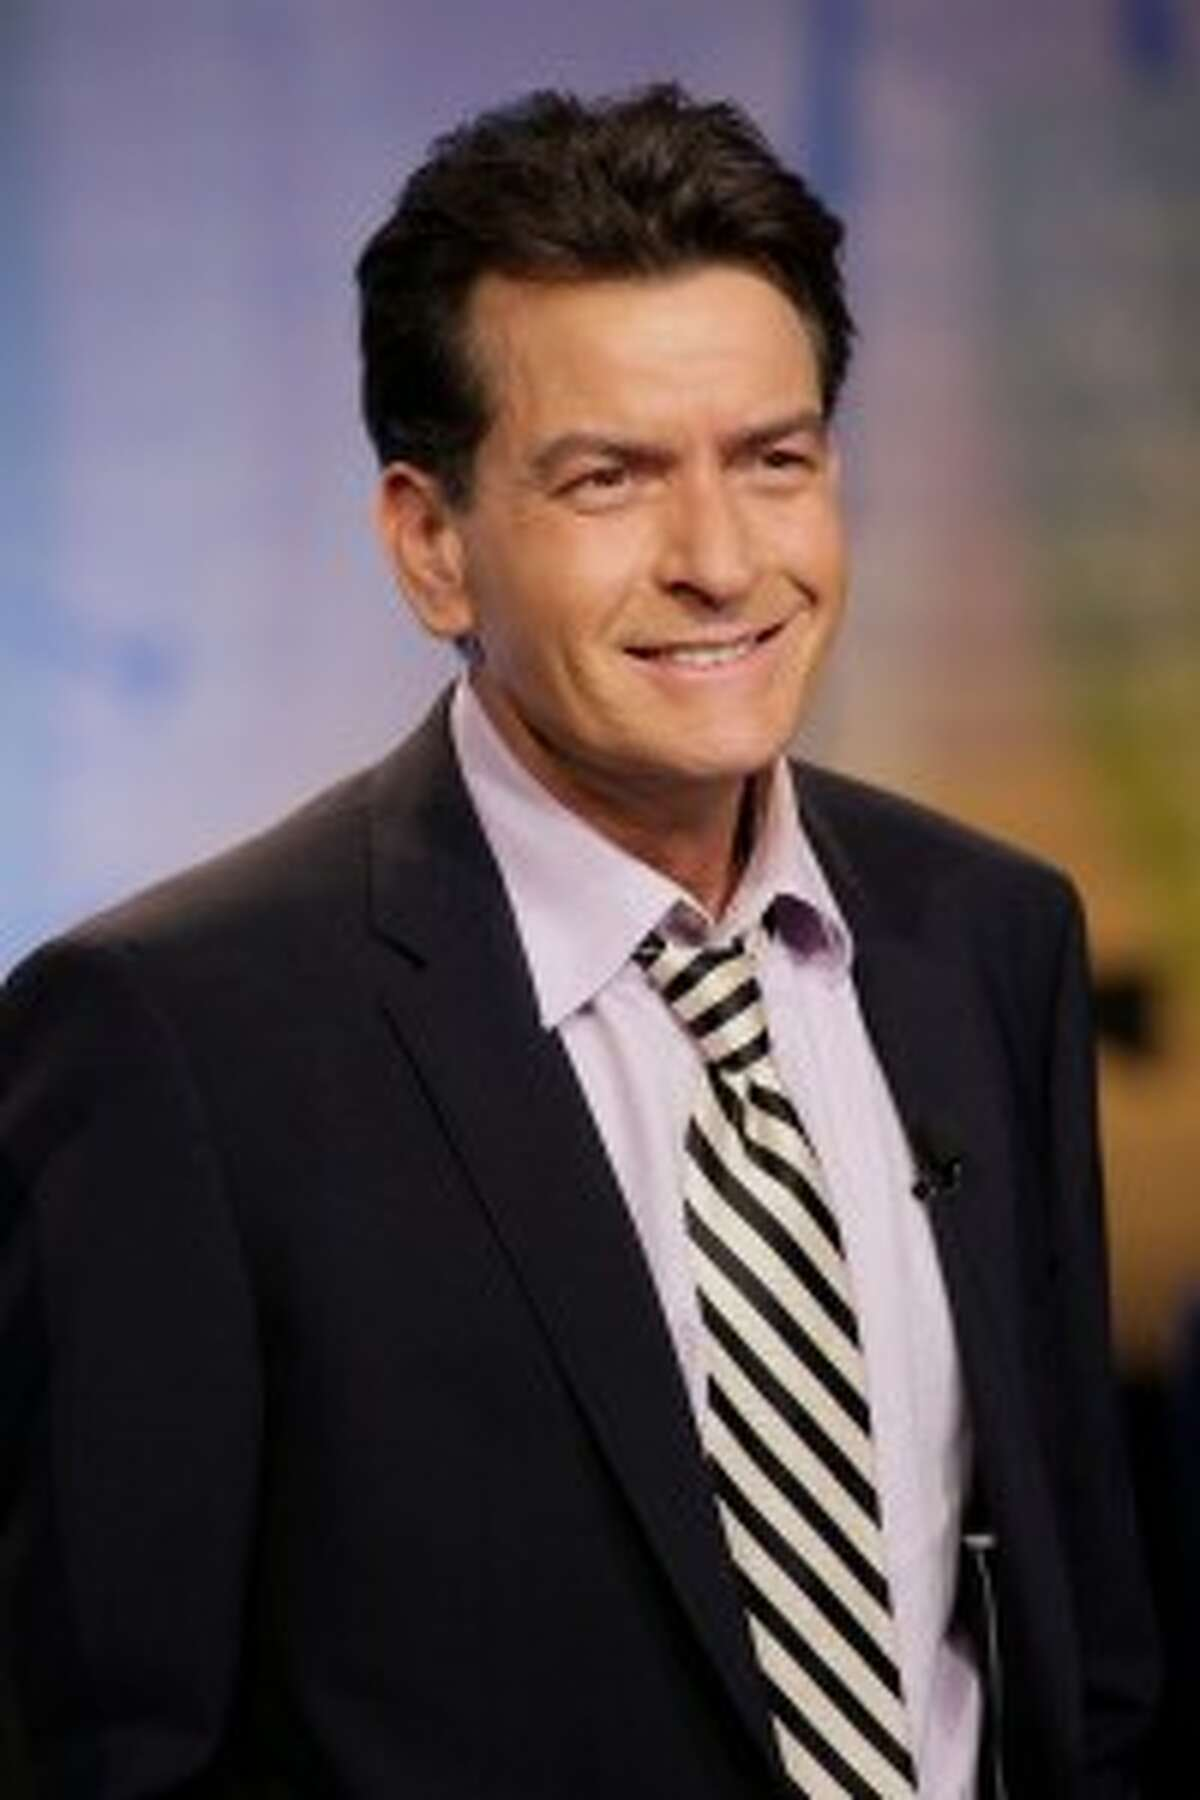 Charlie Sheen was another victim of a swatting prank in Los Angeles last year.